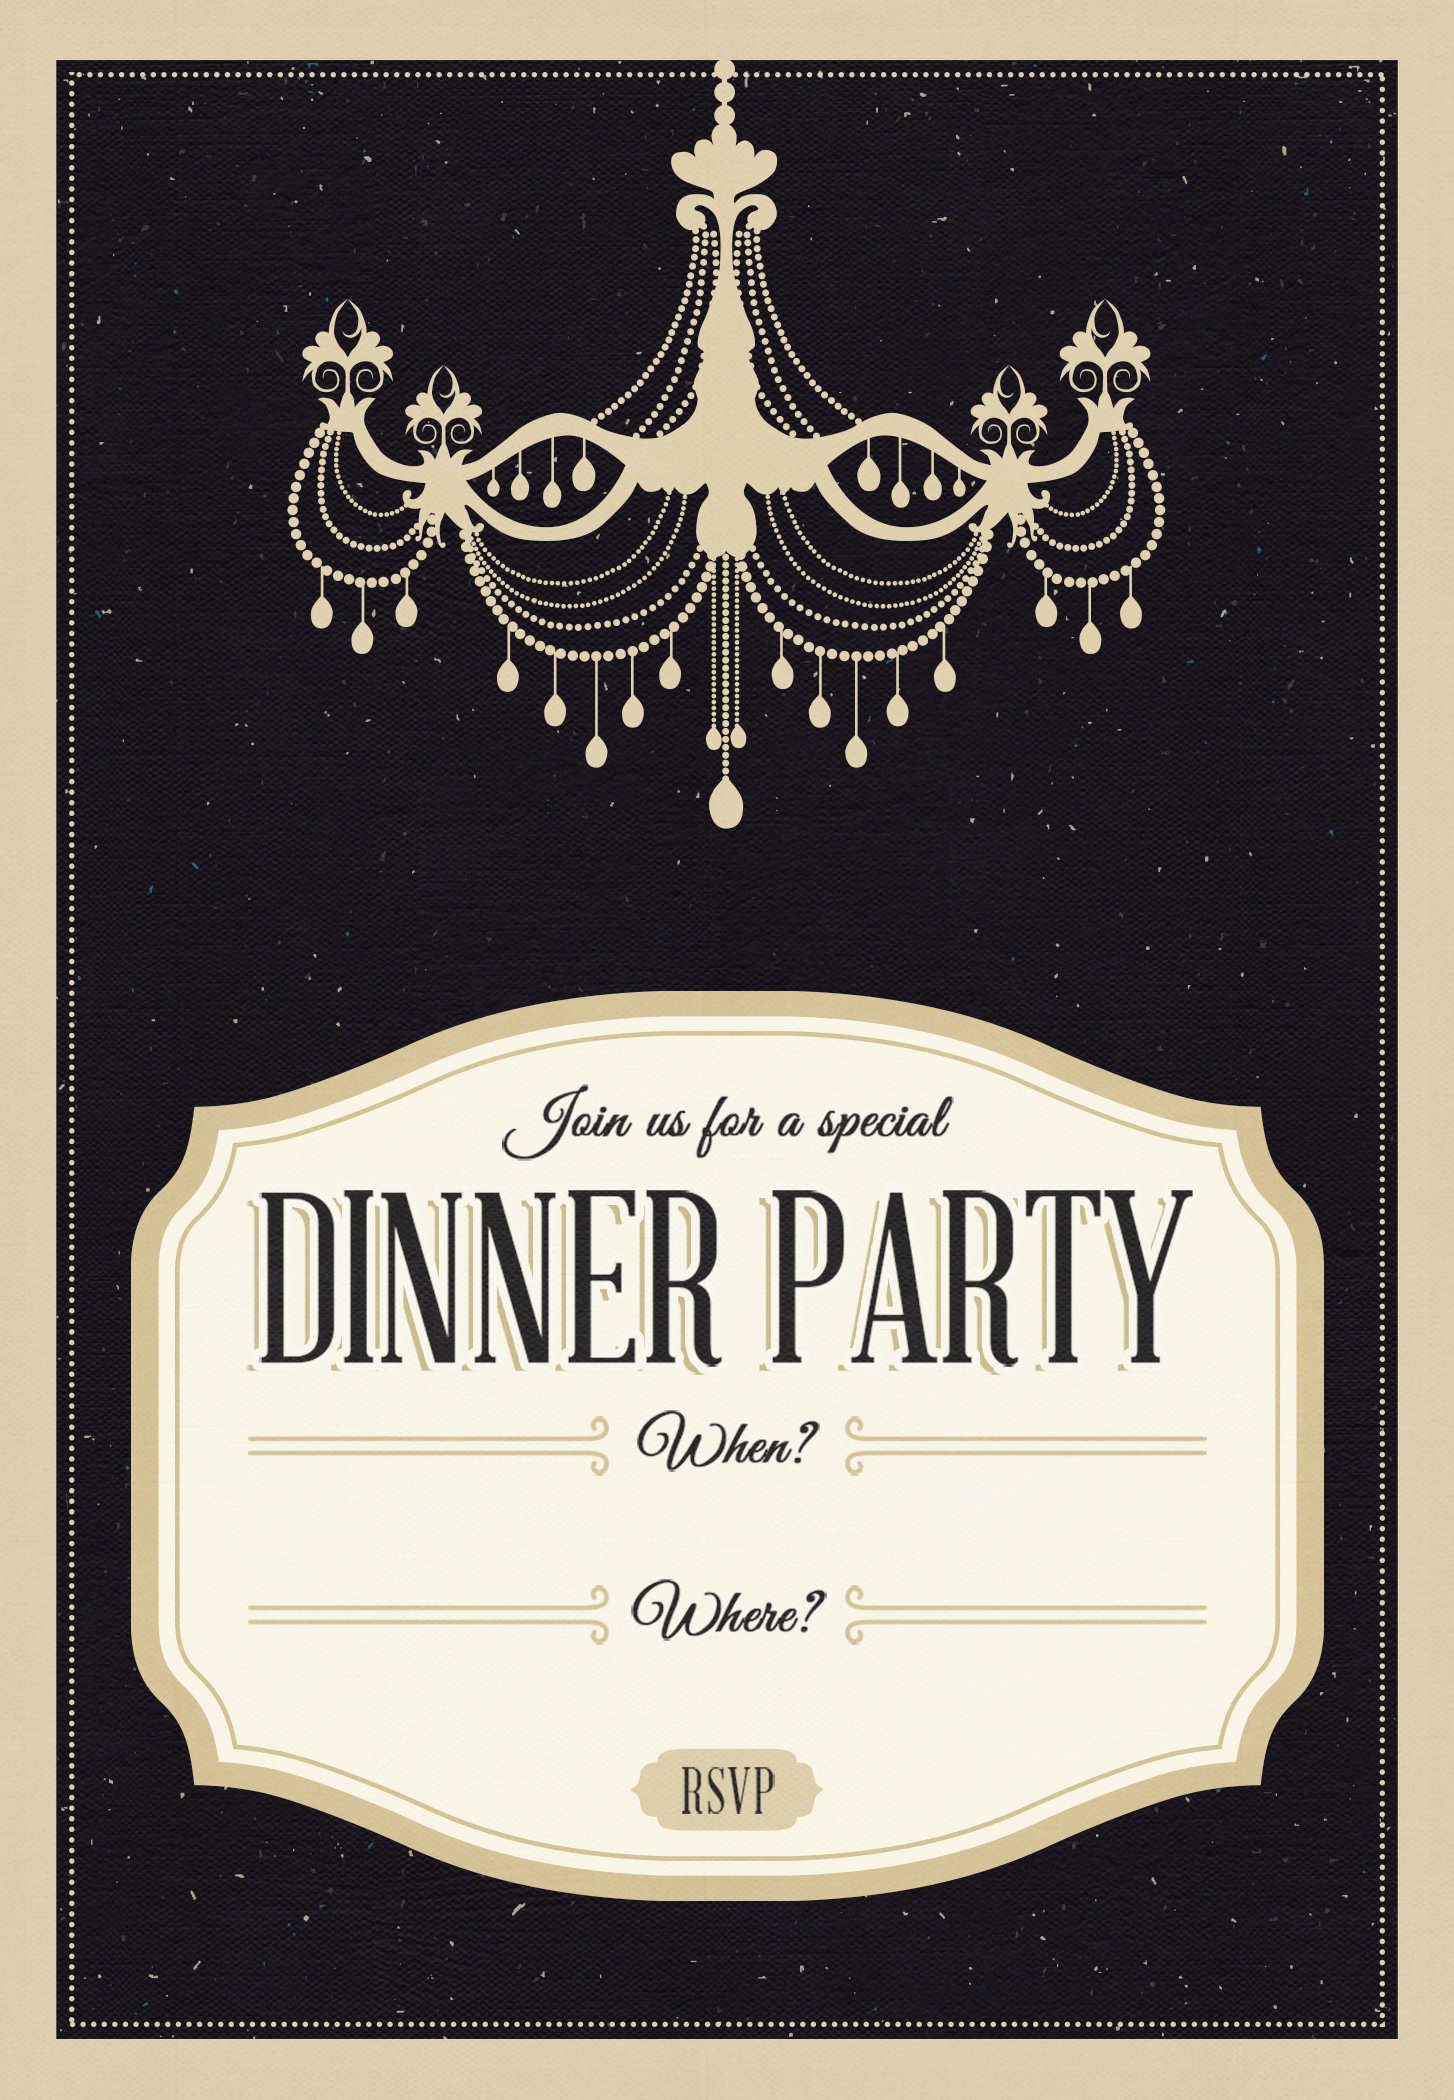 Classy chandelier free printable dinner party invitation template classy chandelier free printable dinner party invitation template greetings island stopboris Choice Image